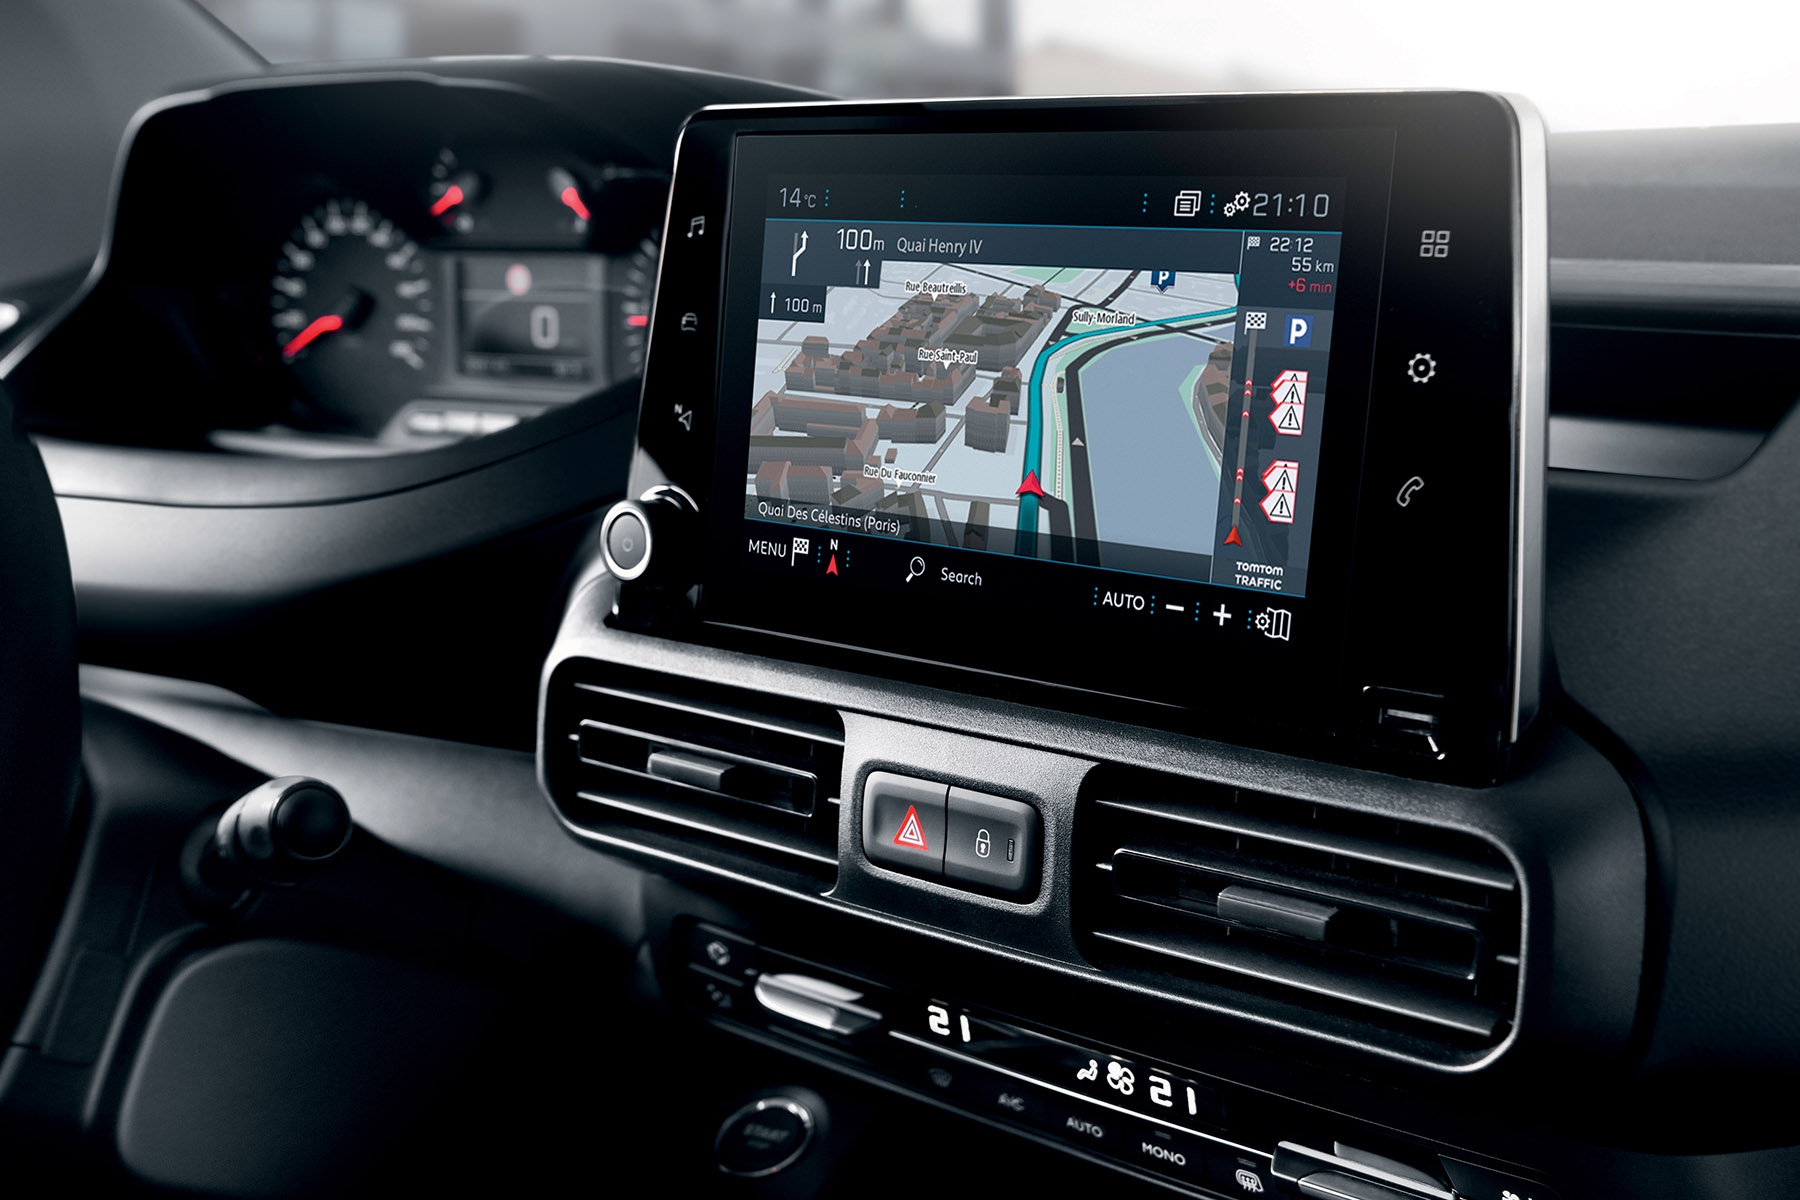 Peugeot Partner touchscreen